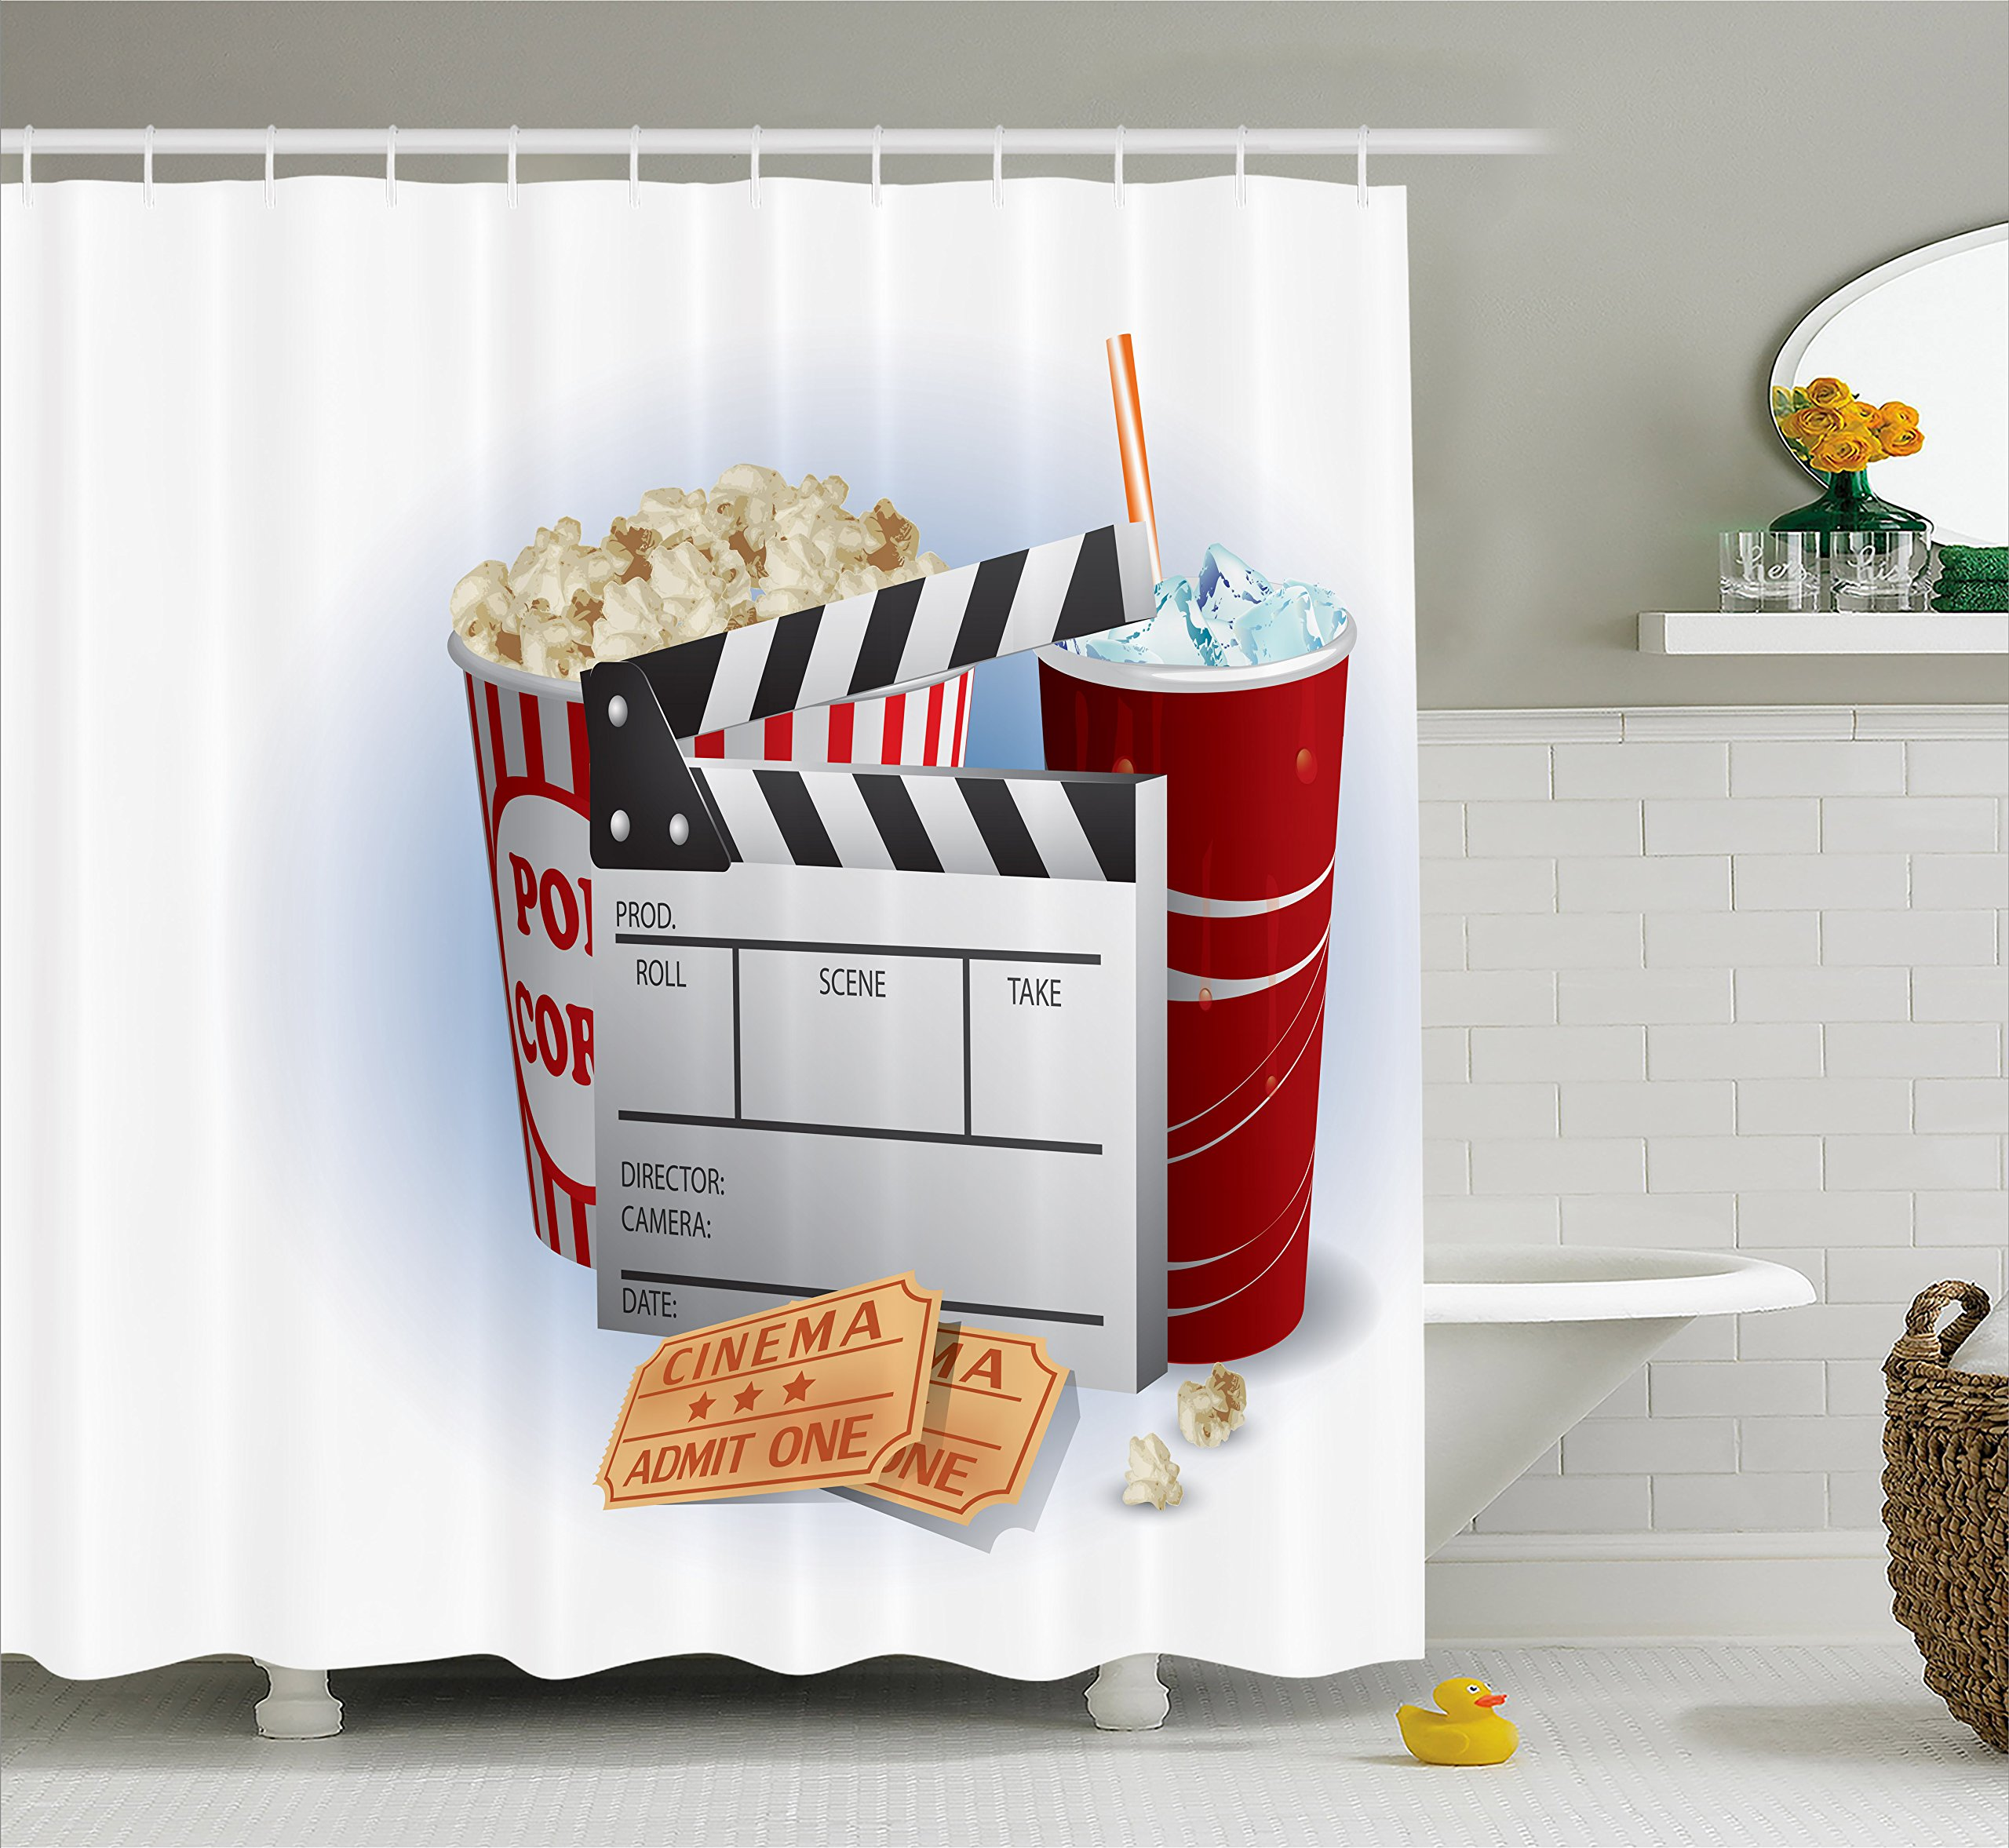 Ambesonne Movie Theater Shower Curtain, Soda Tickets Fresh Popcorn and Clapper Board Blockbuster Premiere Cinema, Cloth Fabric Bathroom Decor Set with Hooks, 70 inches, Multicolor